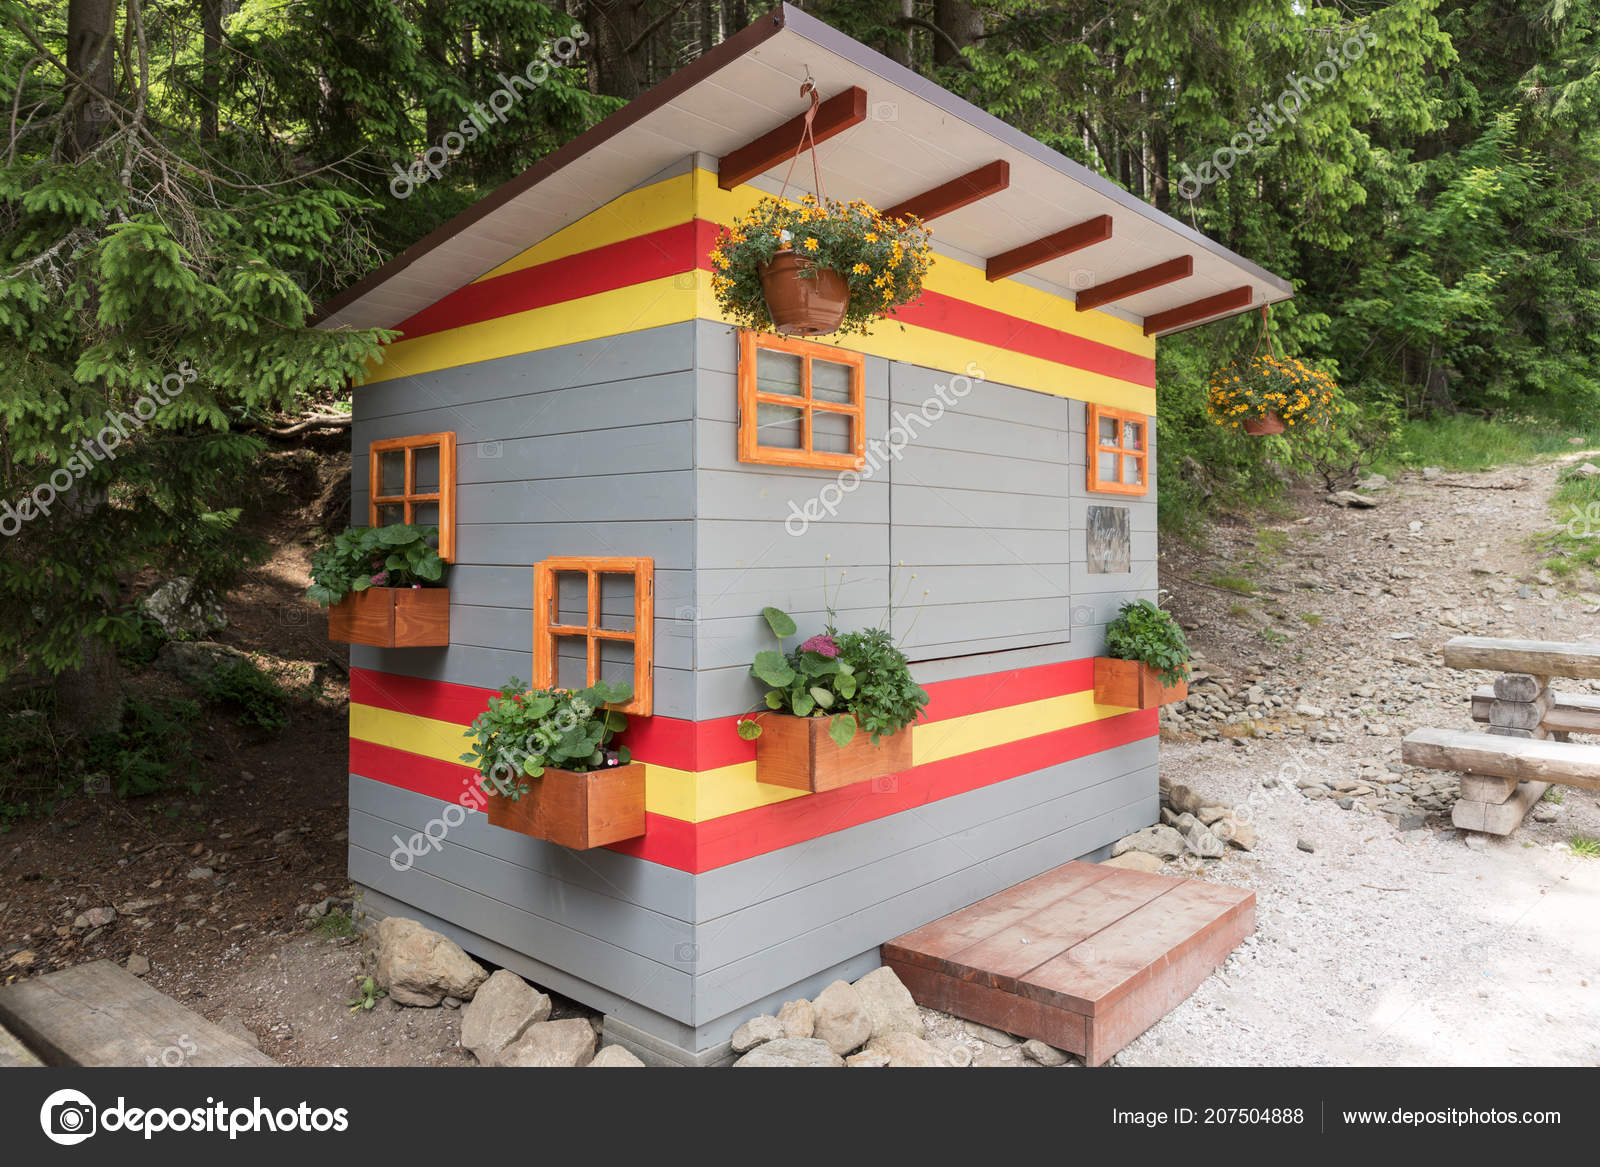 Colorful Abstract Small Wooden House Closed Little Shop Stock Photo C Kelifamily 207504888